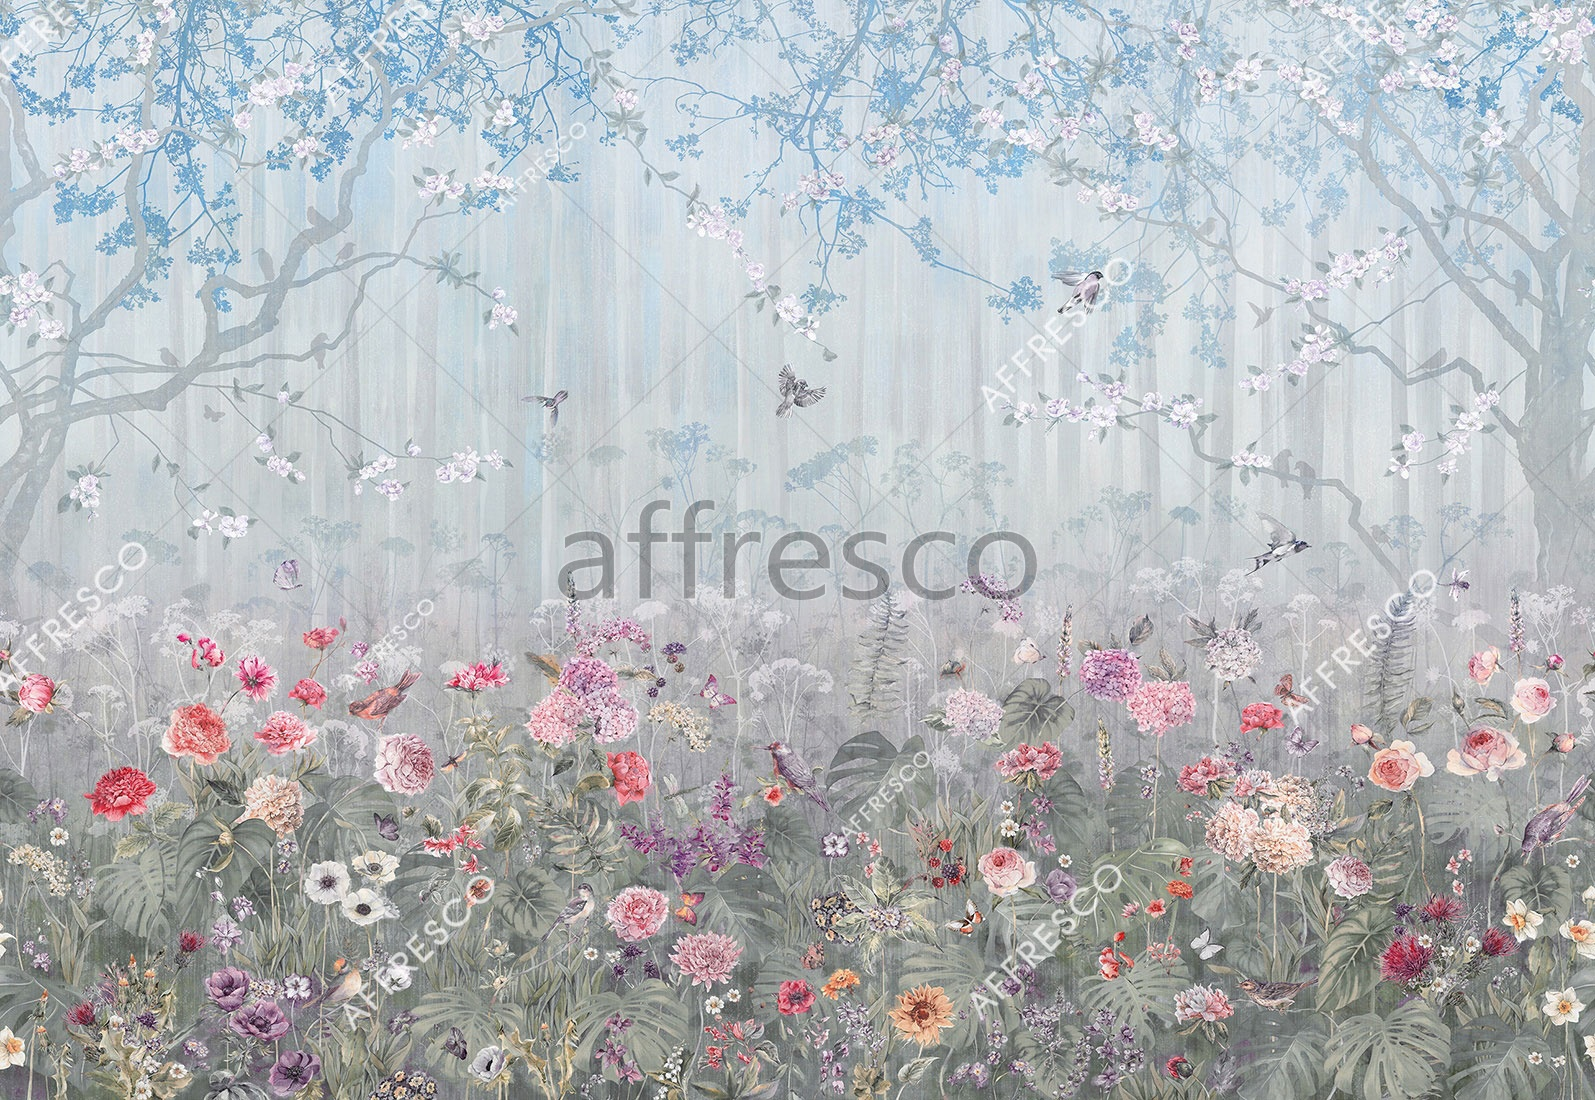 ID136014 | Forest |  | Affresco Factory